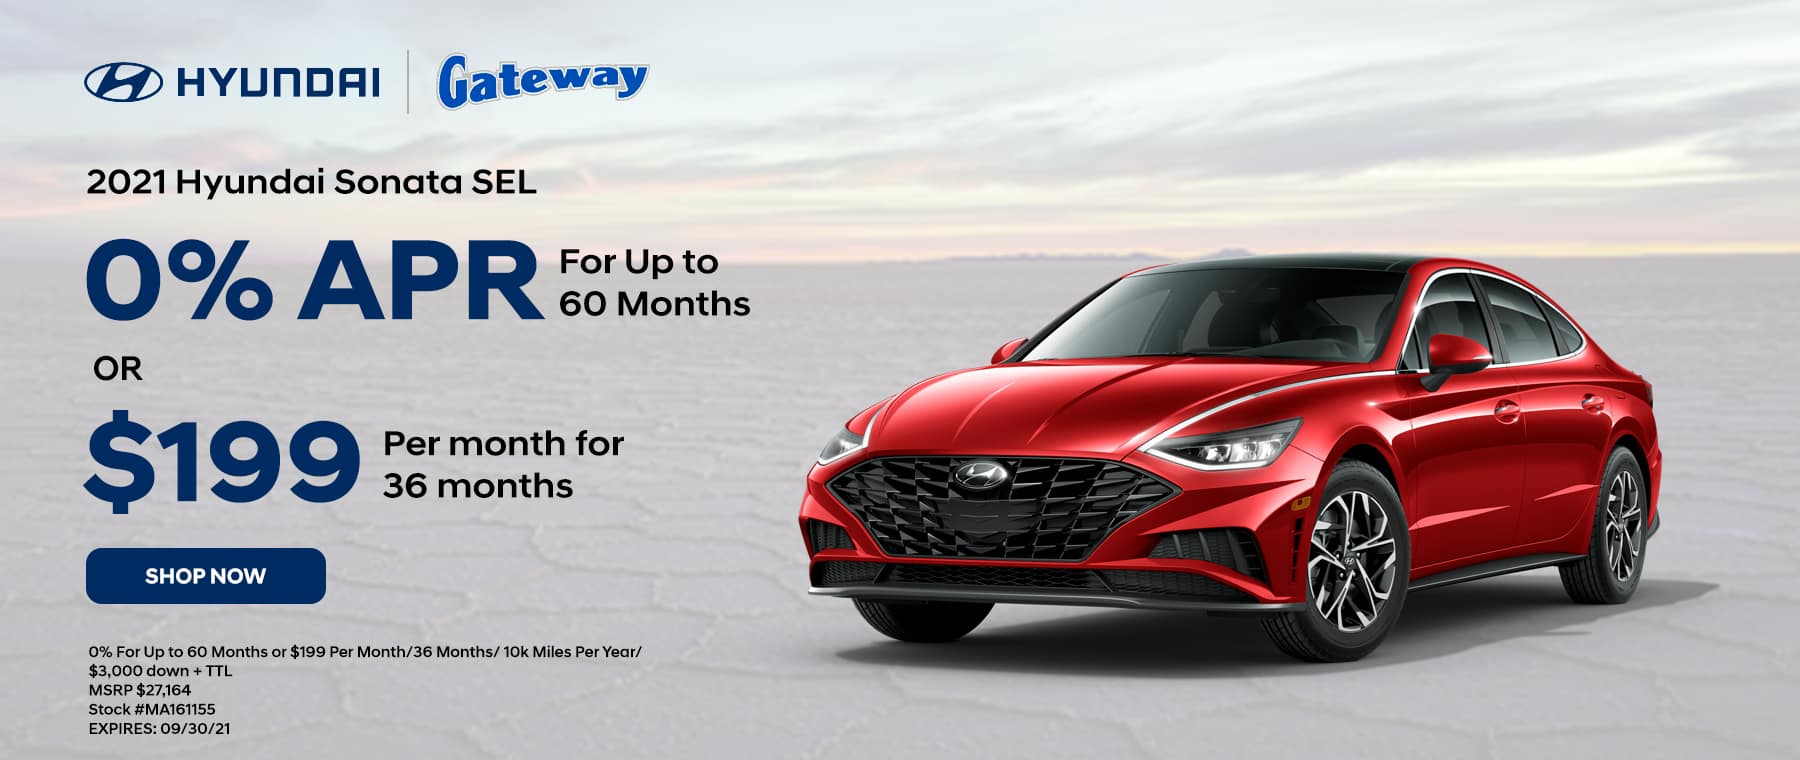 2021 Hyundai Sonata 0% For Up to 60 Months or $199 Per Month for 36 Months